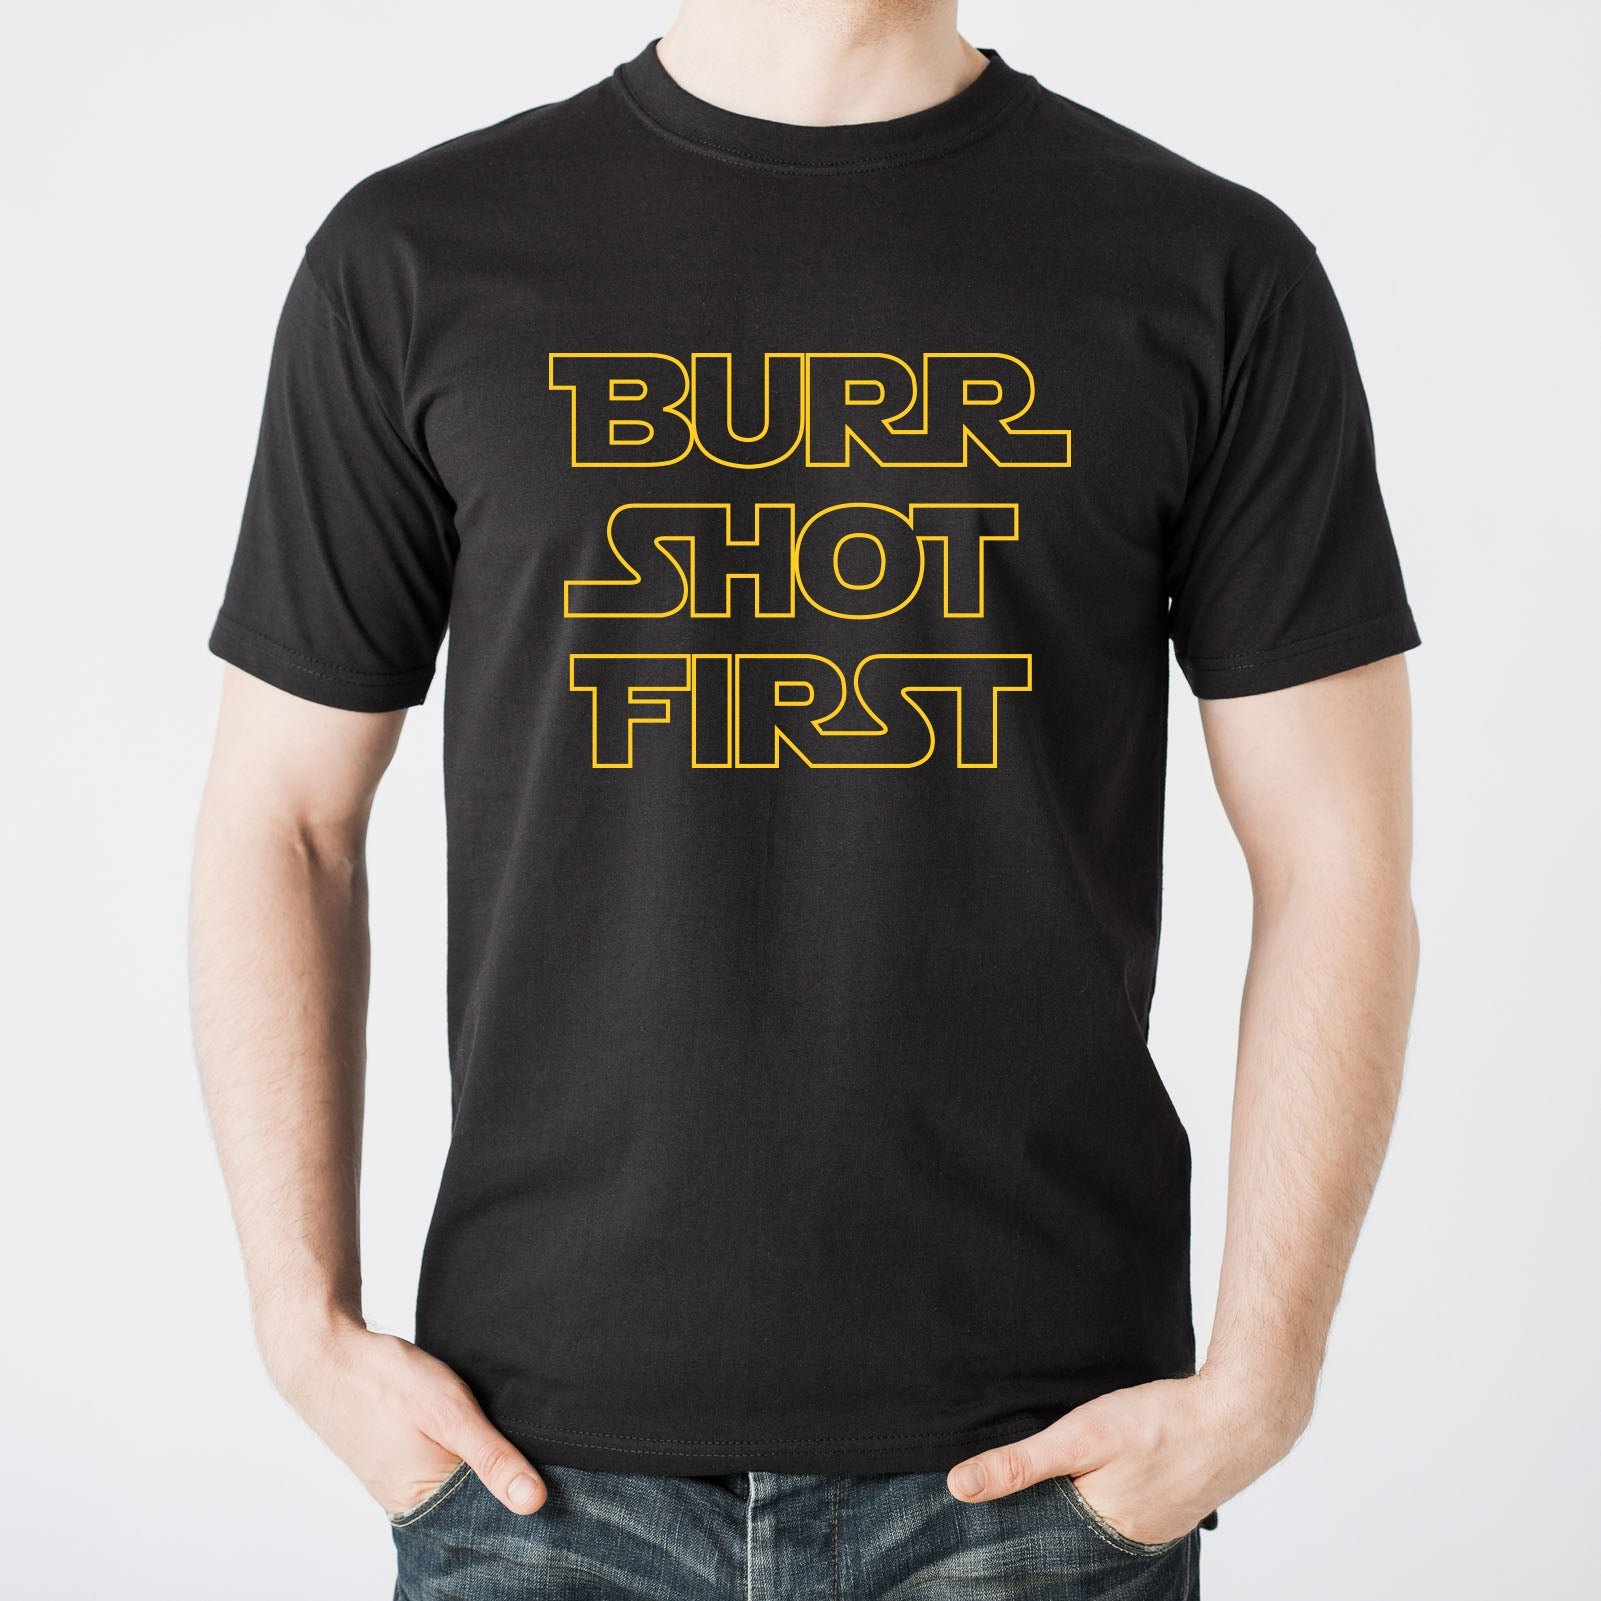 c84ecdbb ... Burr Shot First - Alexander Hamilton Musical Funny Adult History Quote  America Cotton T-Shirt ...